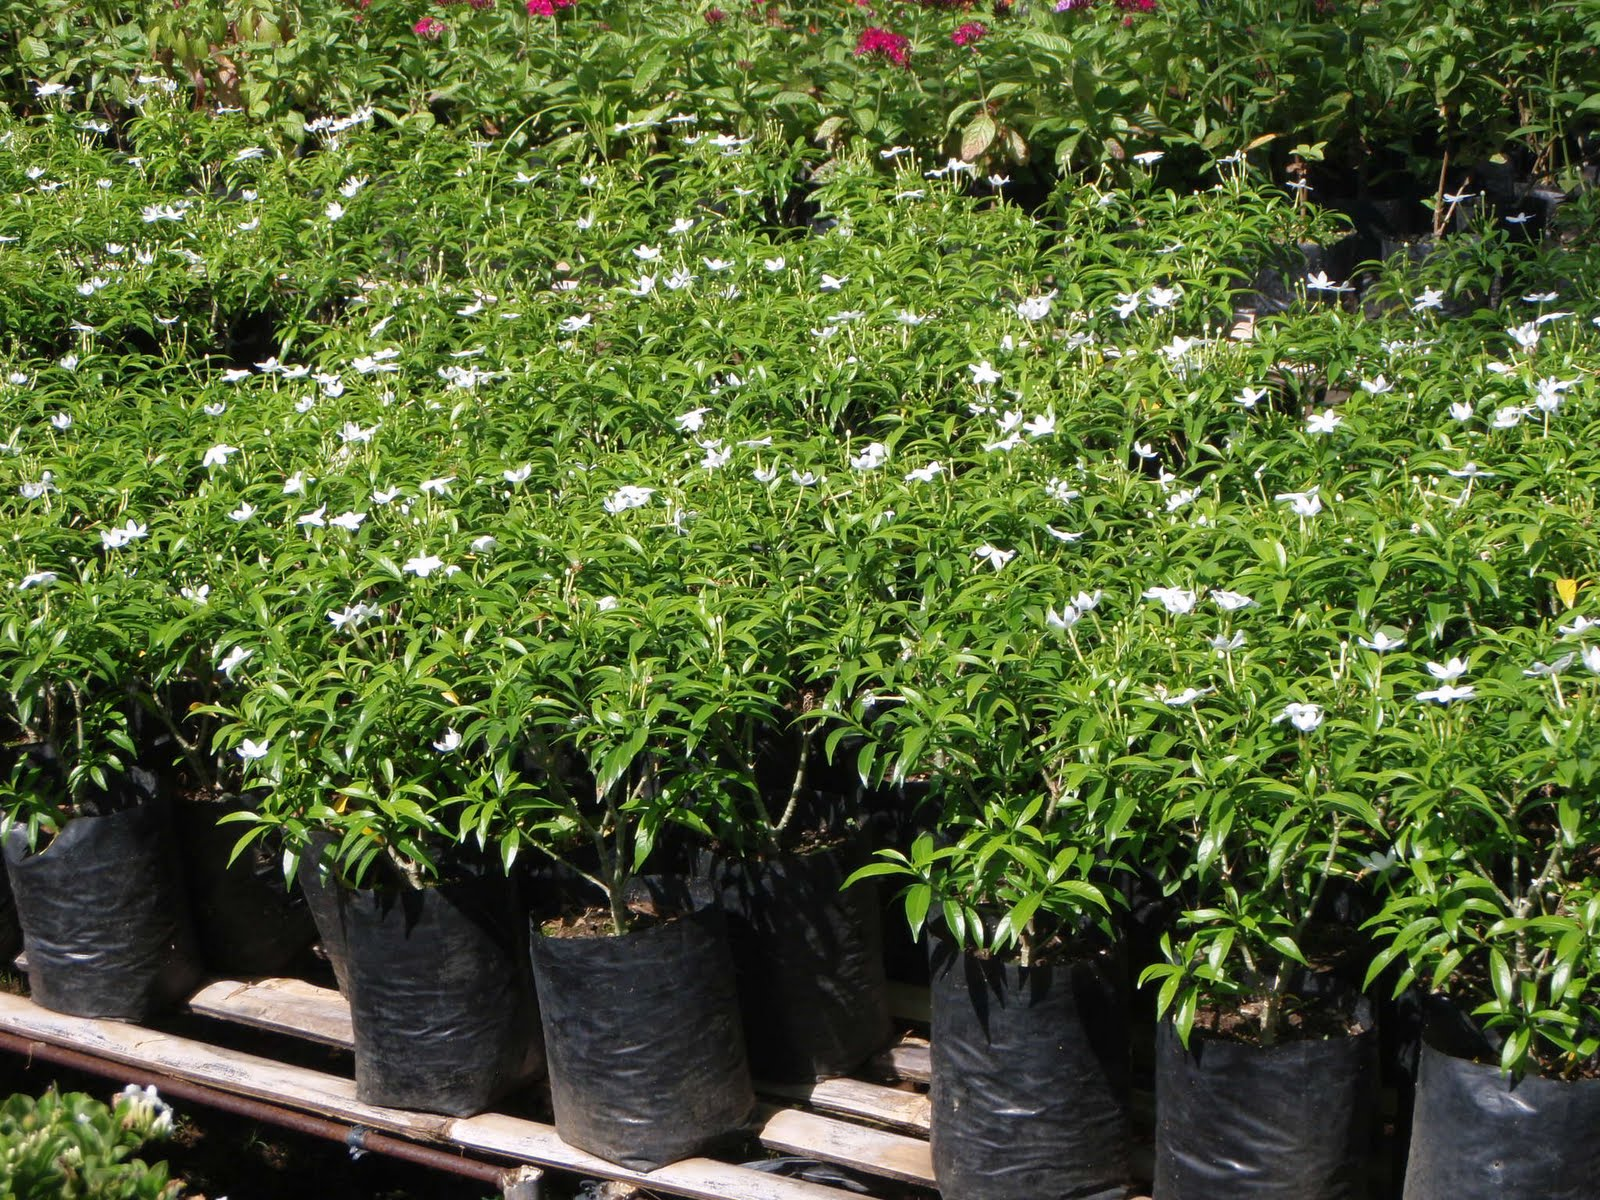 Garden Bush: ALAVERDE 33: These Are The Plants That I Have In My Garden